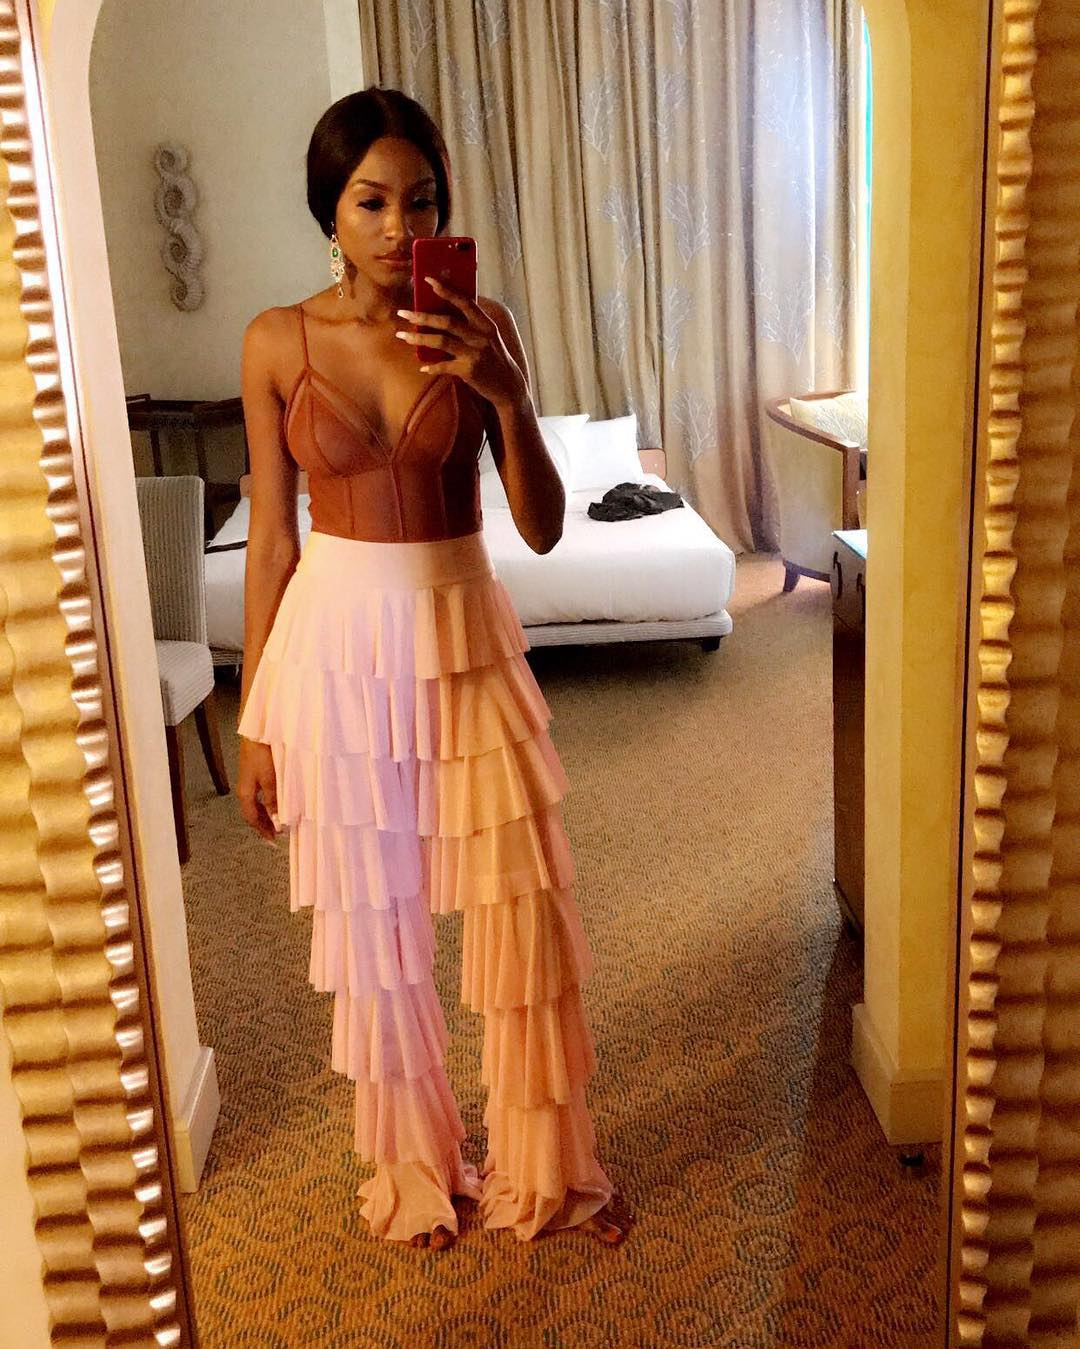 party-girl-style-with-ex-beauty-queen-ronke-tiamiyu-a-lookbook-of-sultry-sexy-party-outfit-ideas